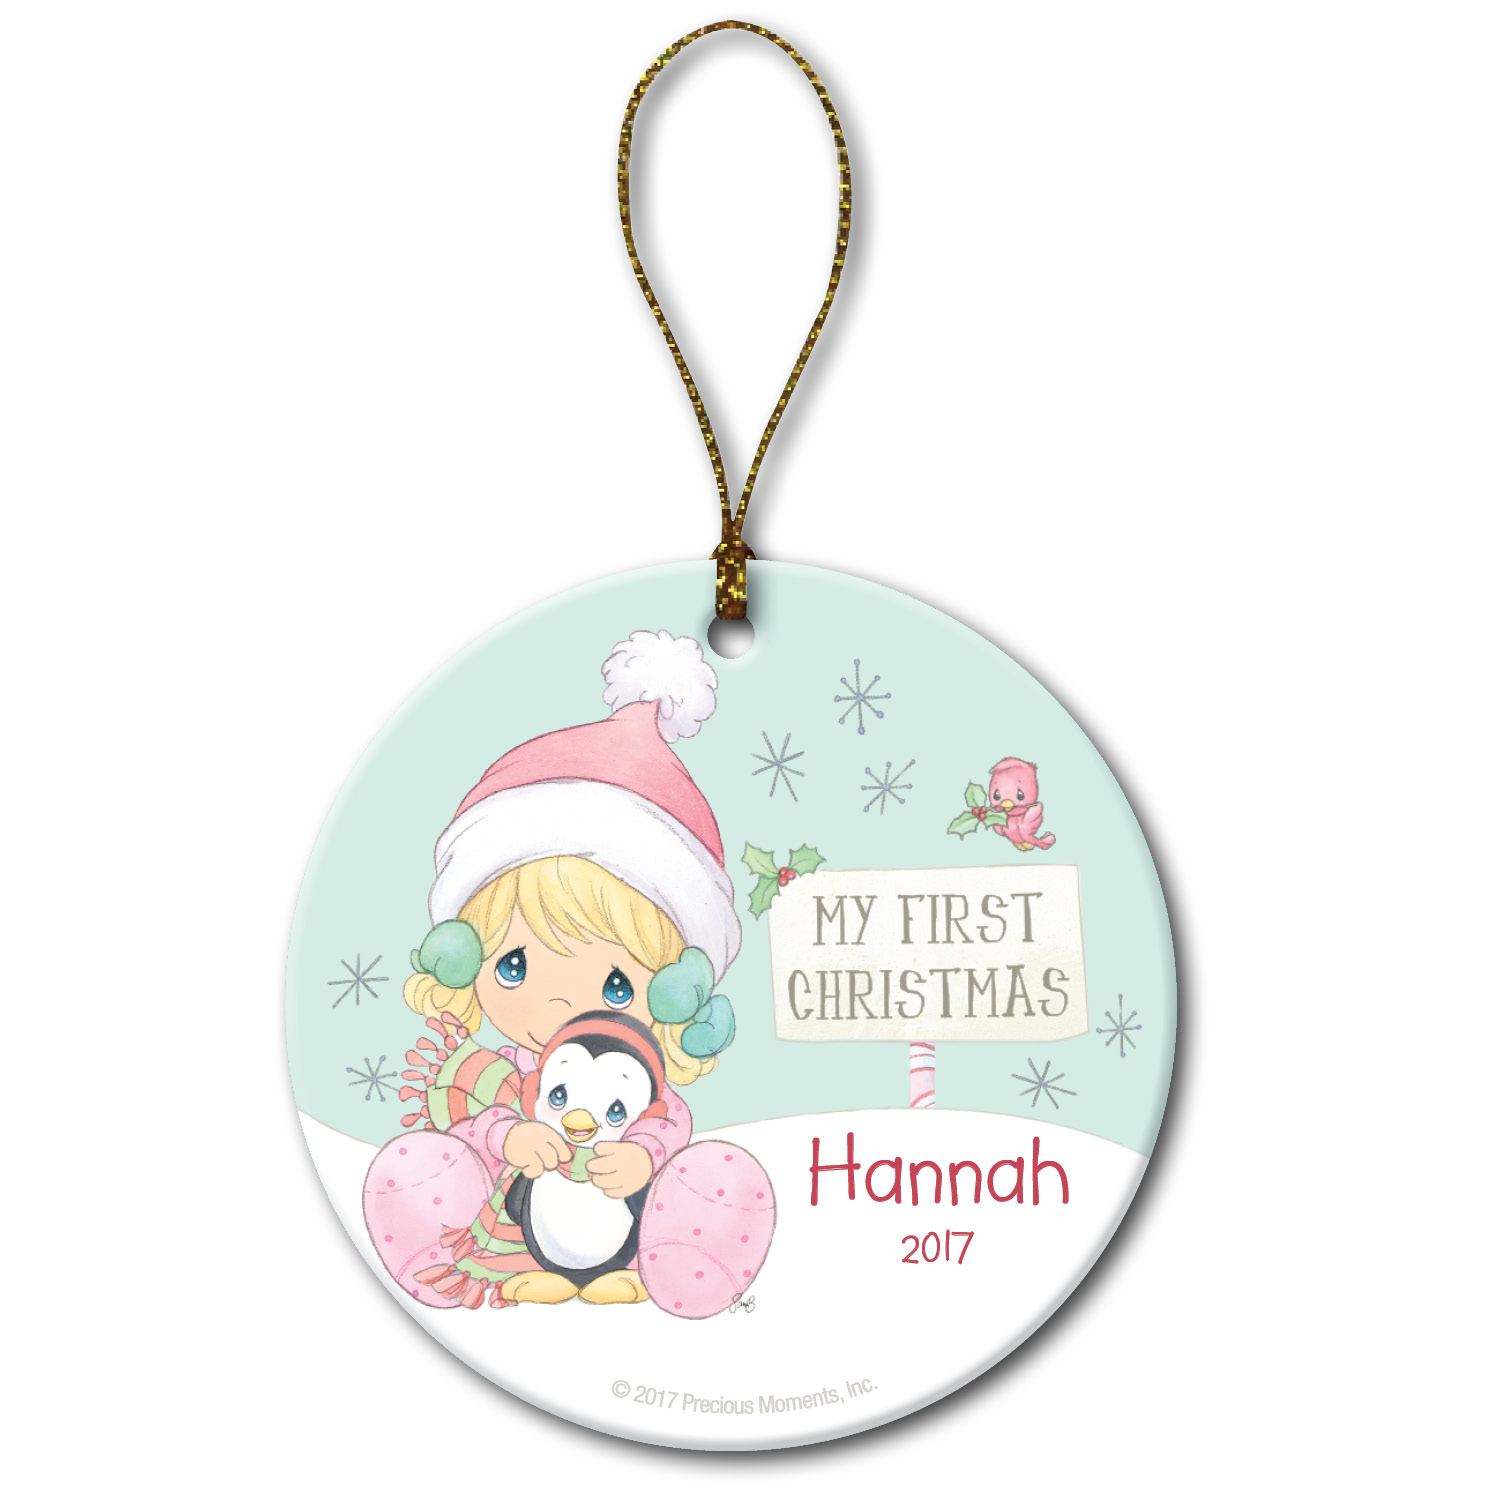 Personalized Precious Moments Christmas Ornament - Her First Christmas